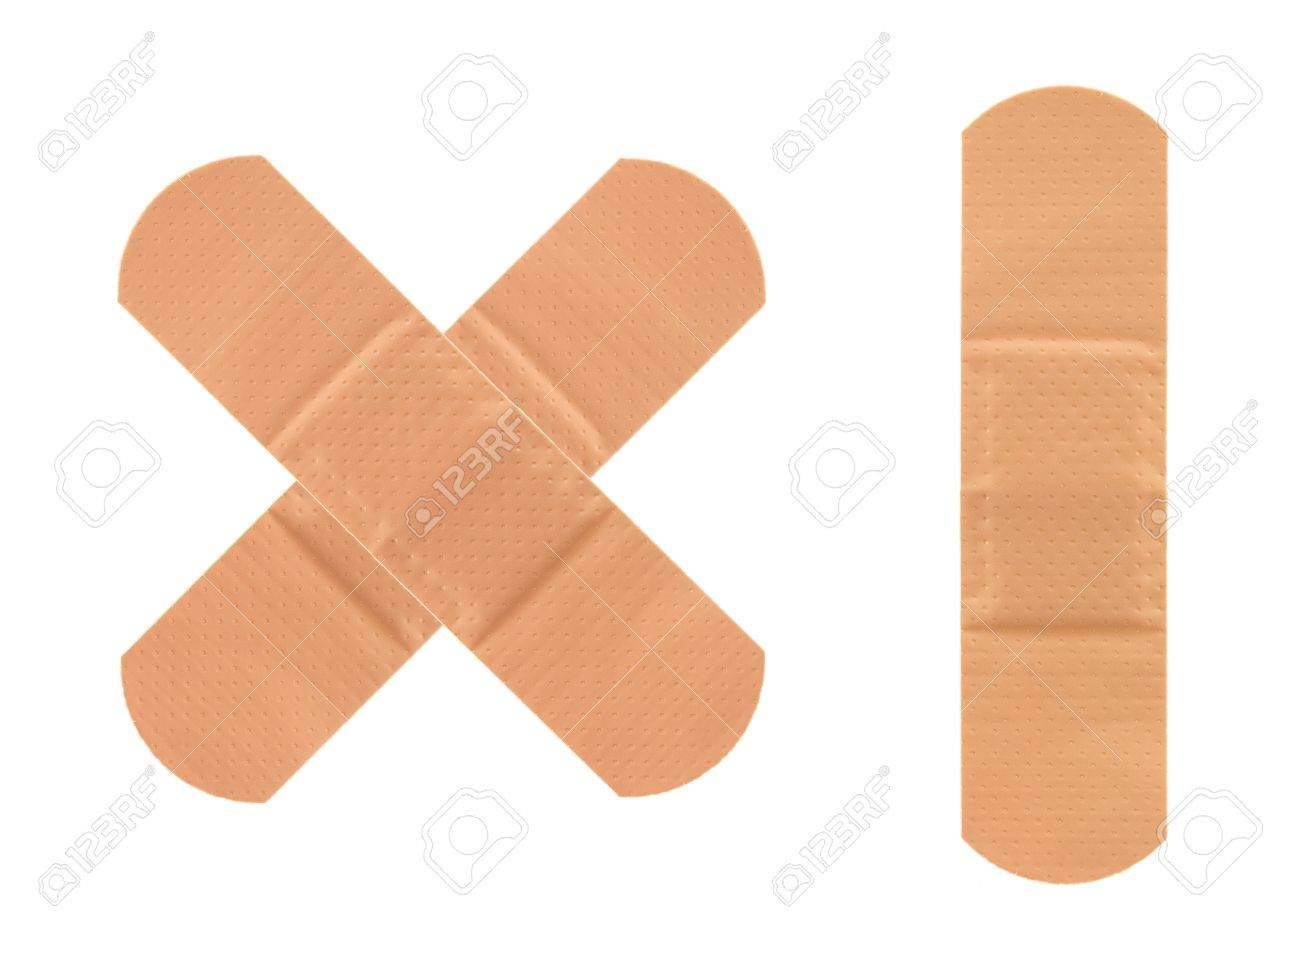 A band aid isolated against a white background Stock Photo - 13422451